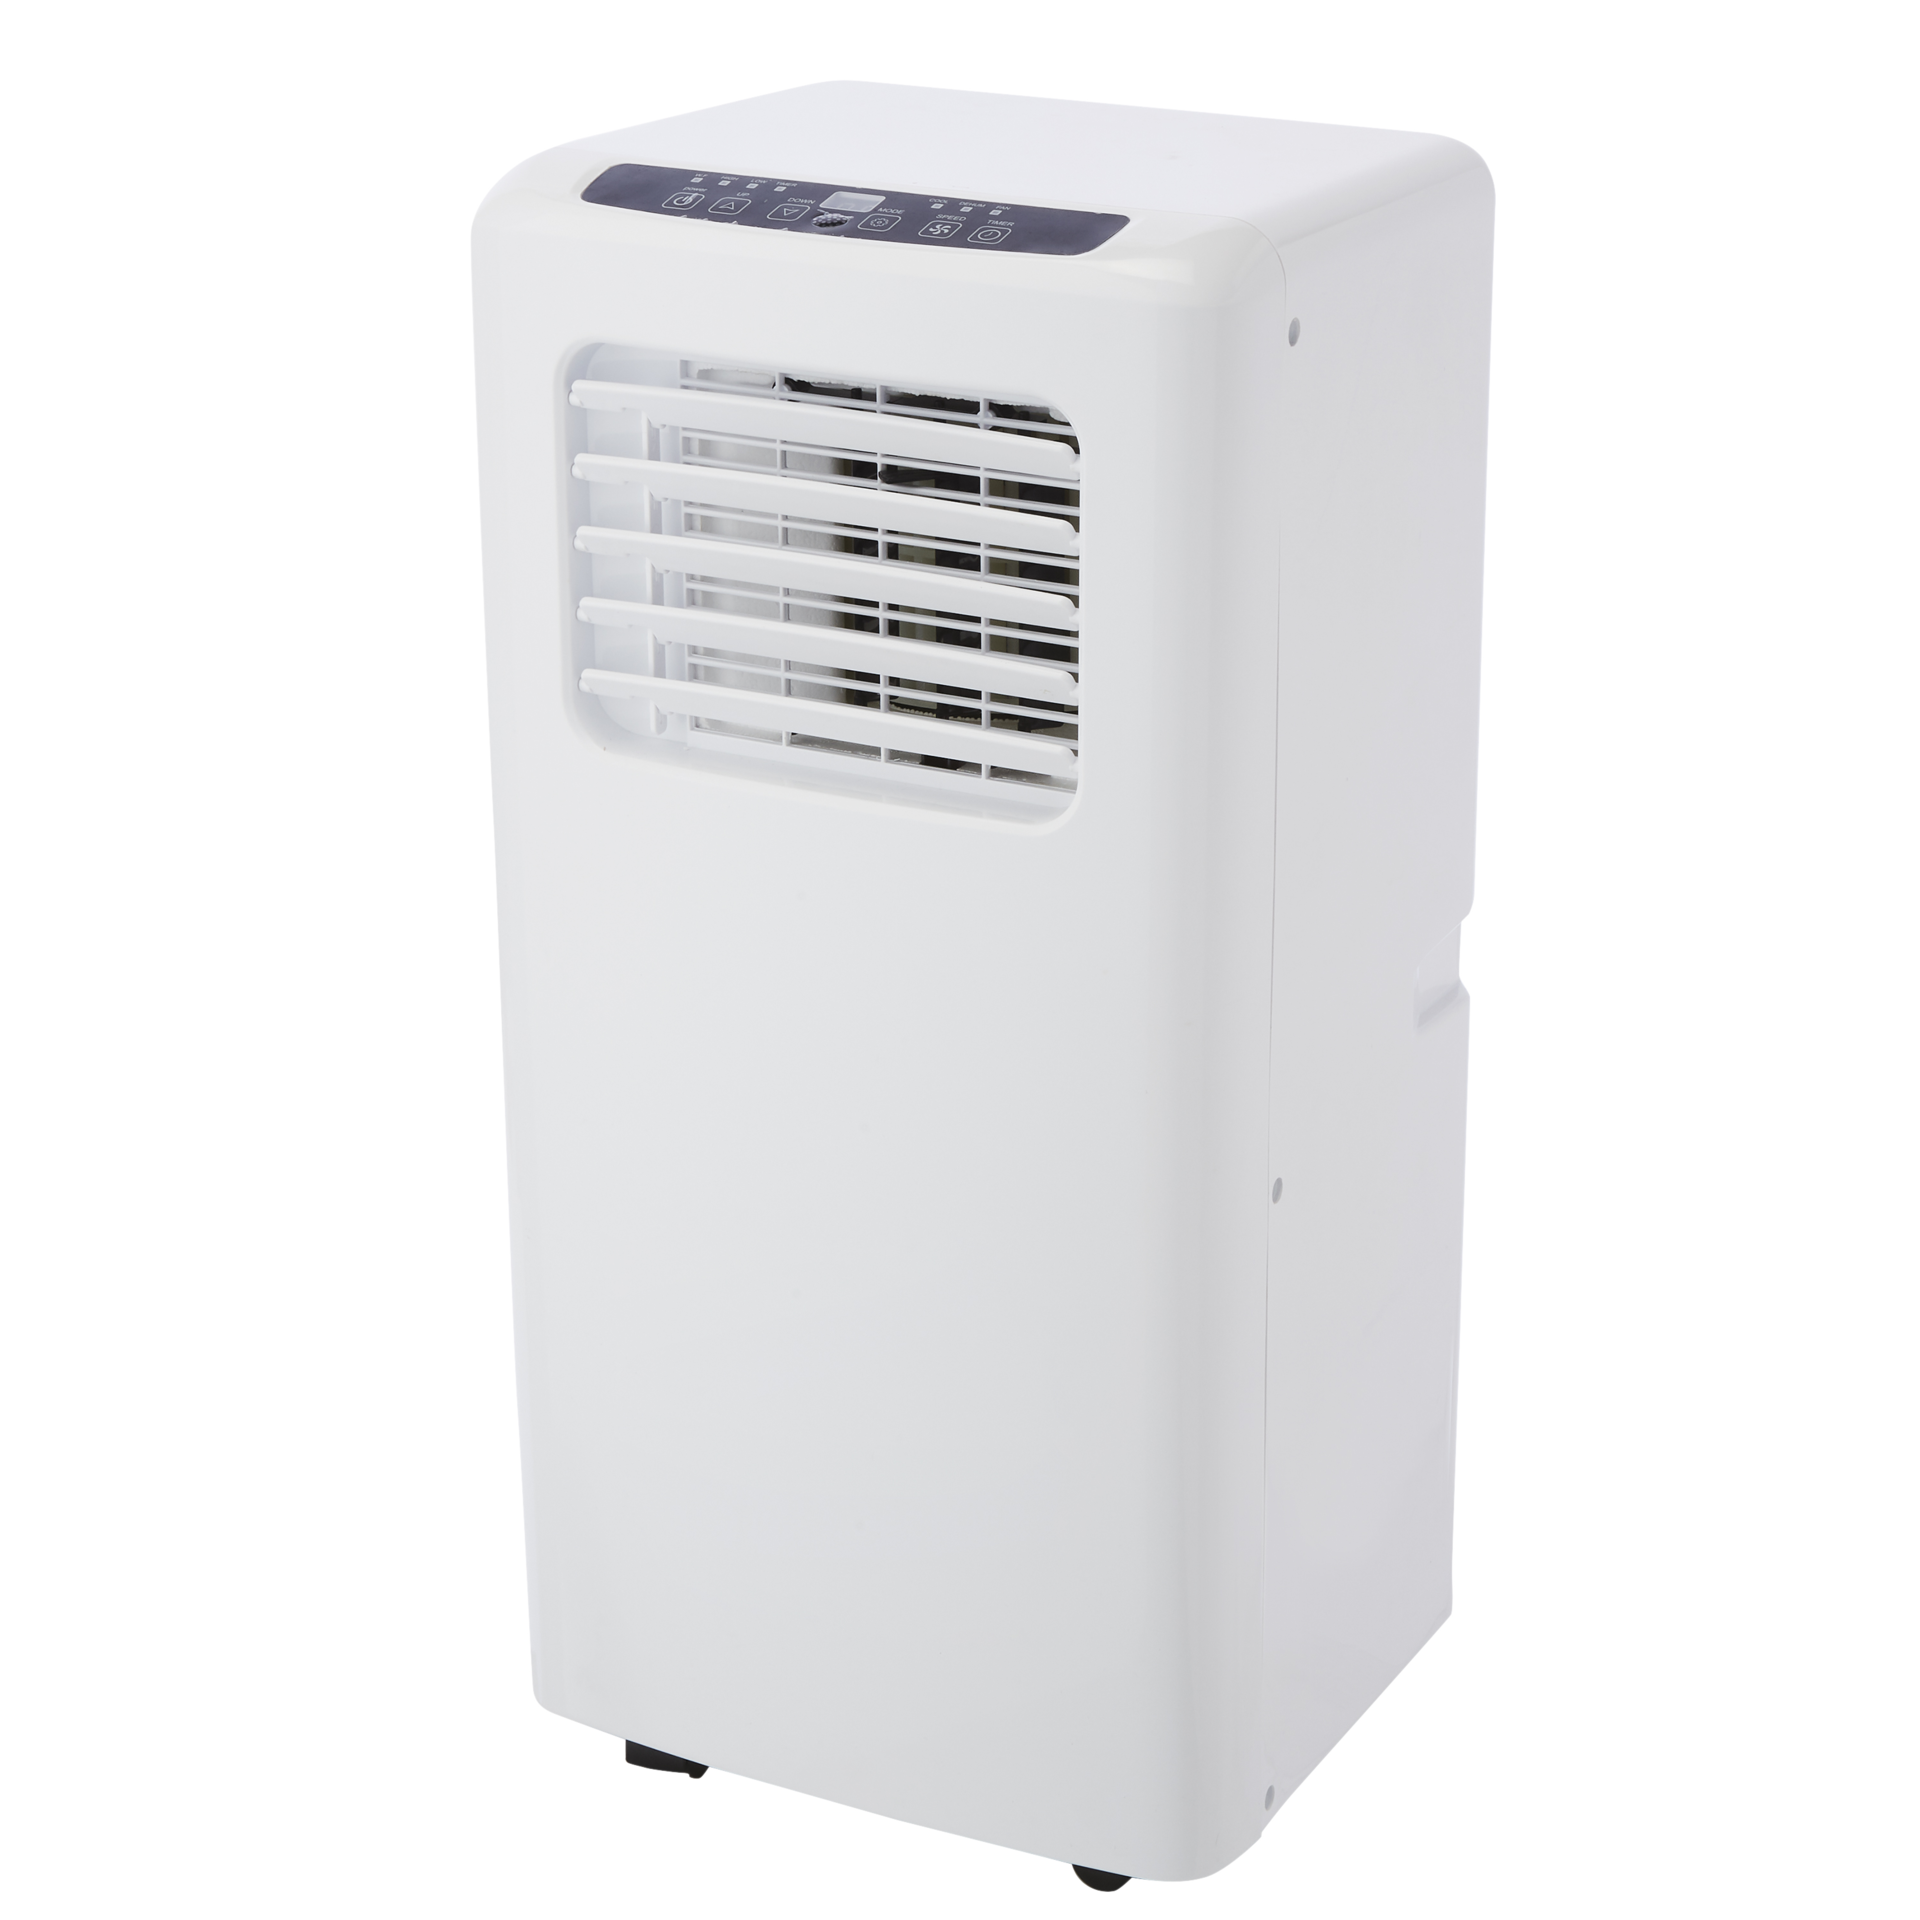 Climatiseur Mobile Equation First 2 1400 W Leroy Merlin